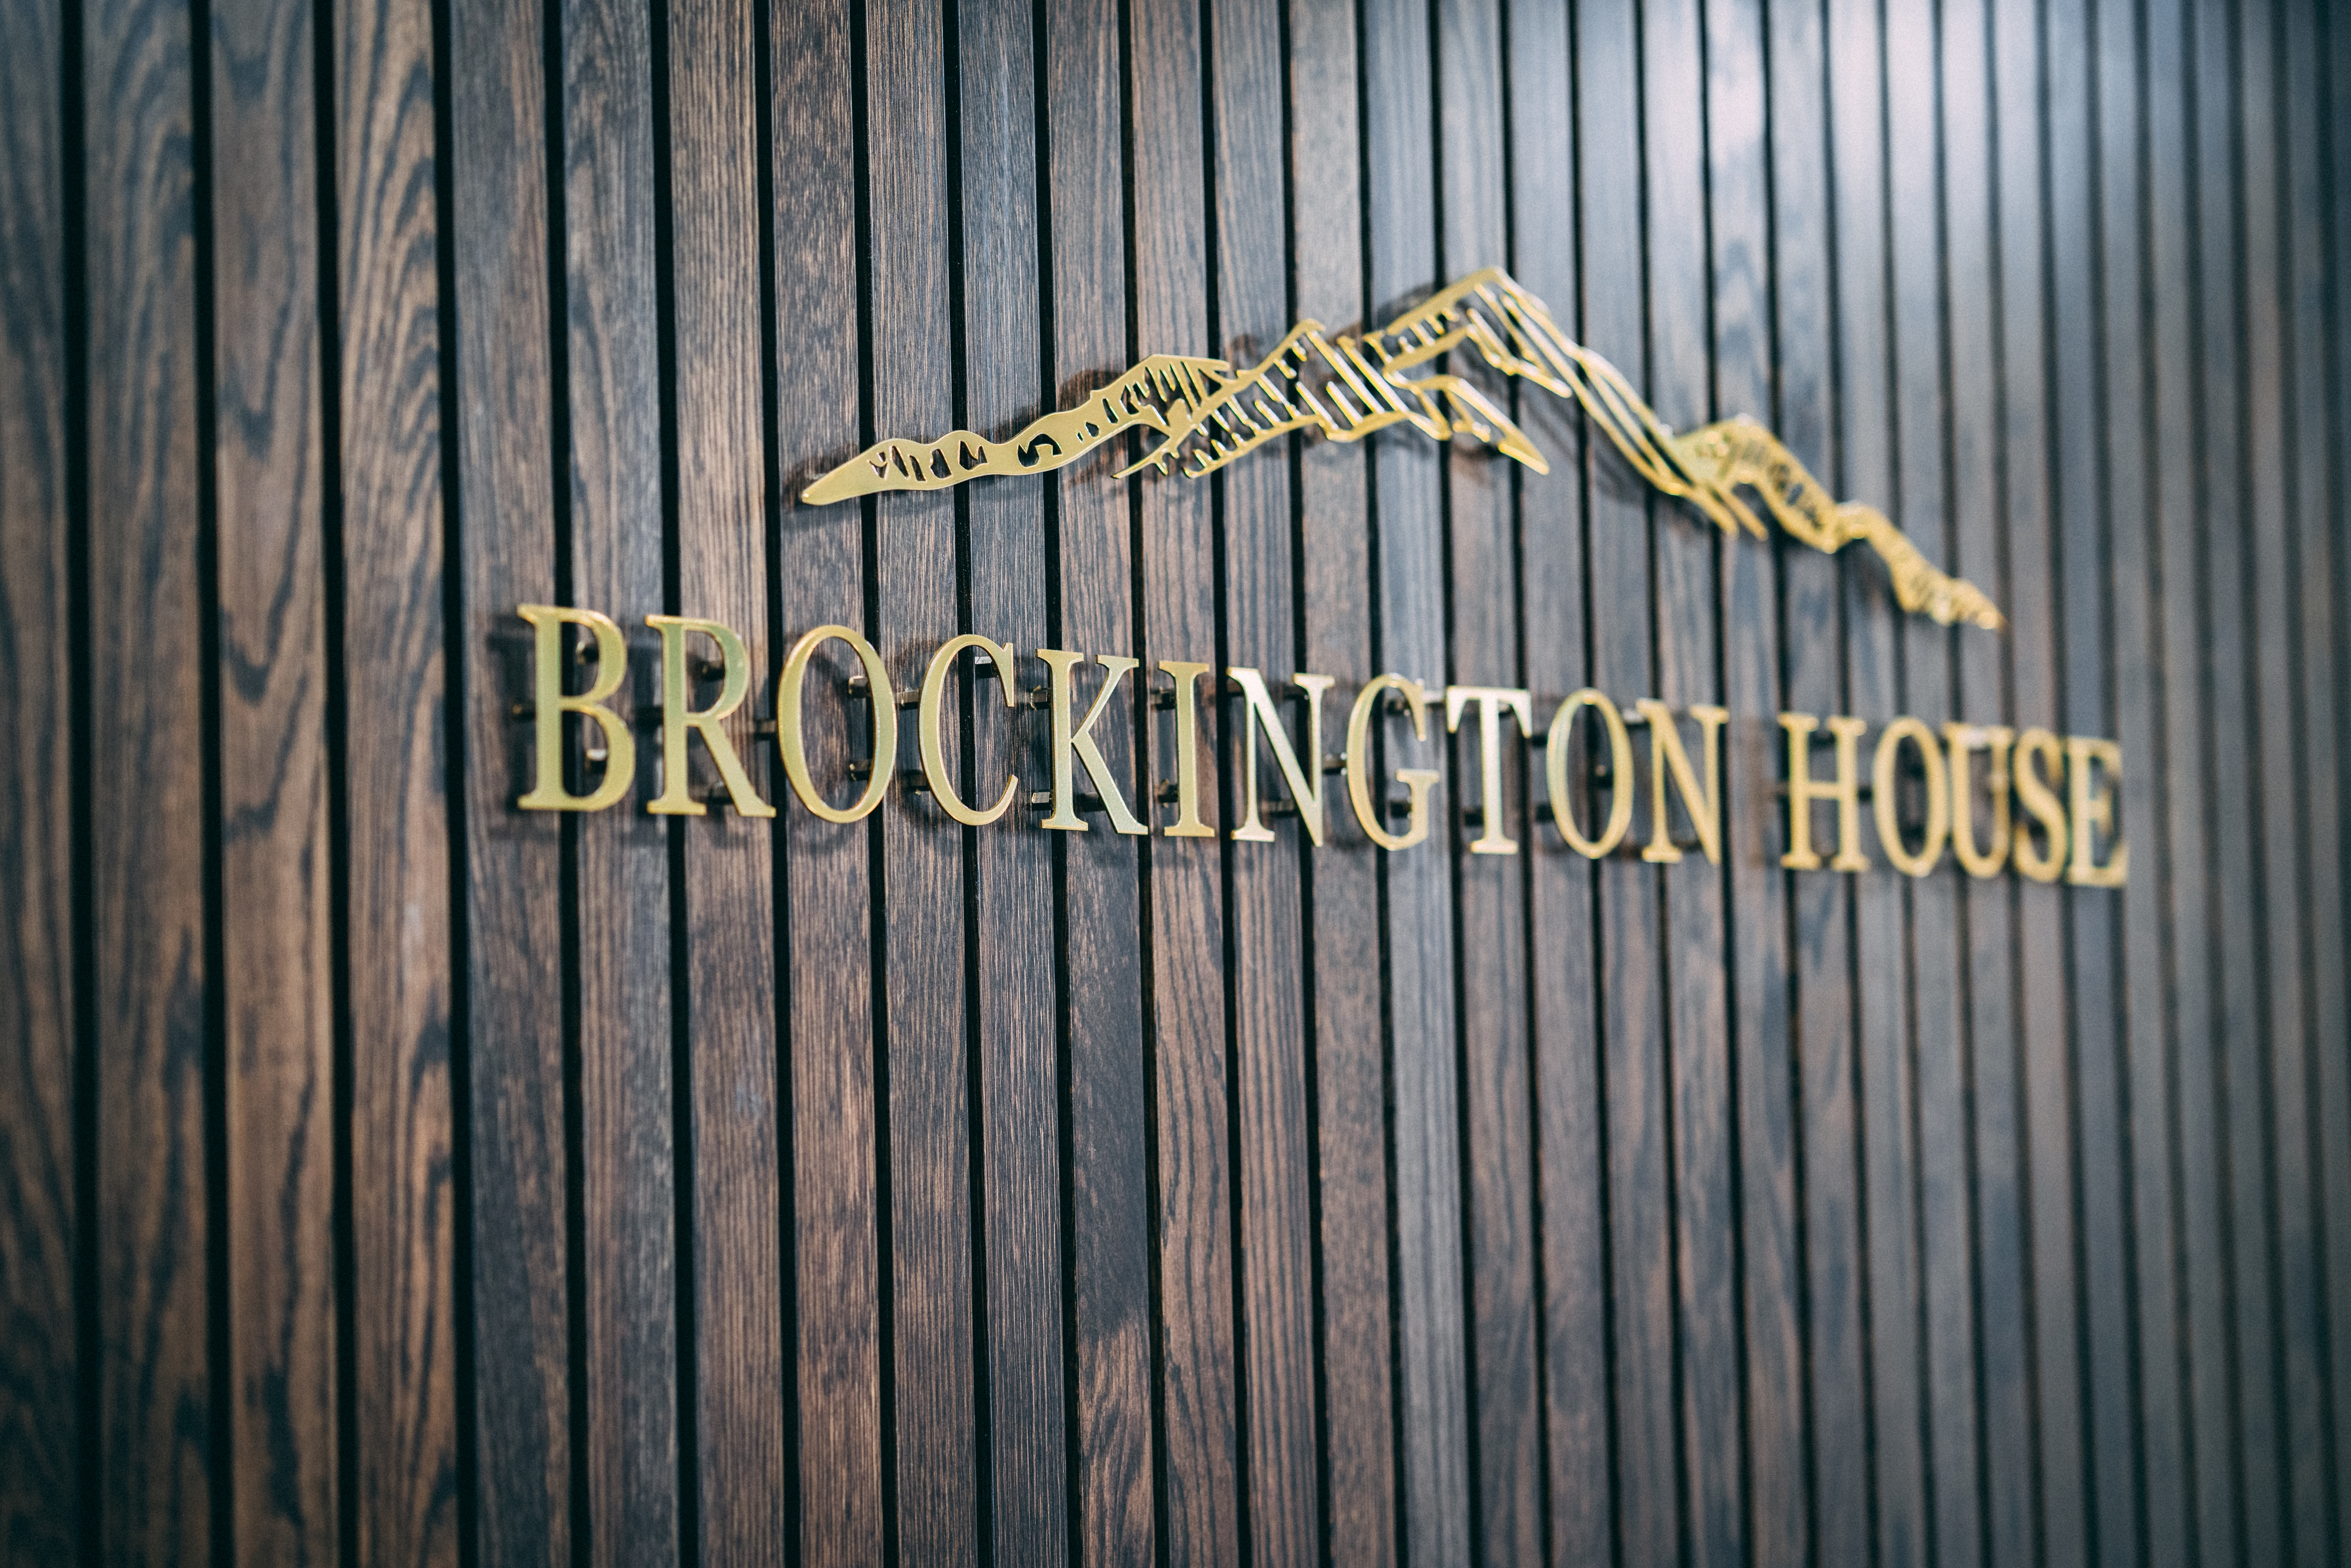 Brockington House Reception